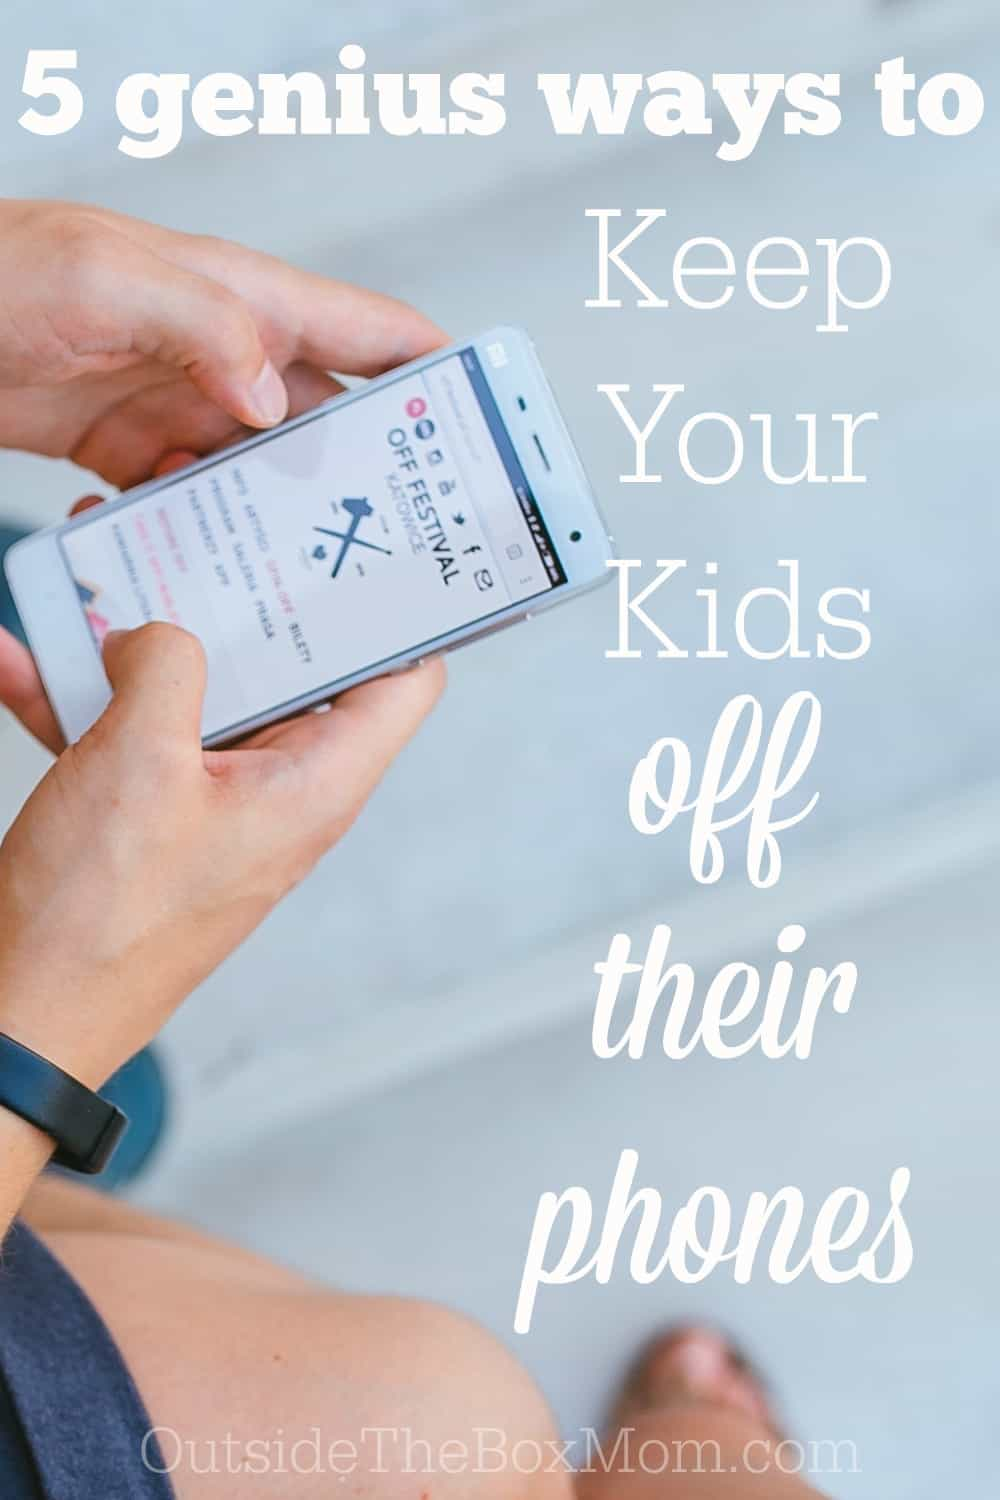 Do you feel like your kids are constantly on their phones? Here are eight tips to keep your kids off their phone and engaged with your family.